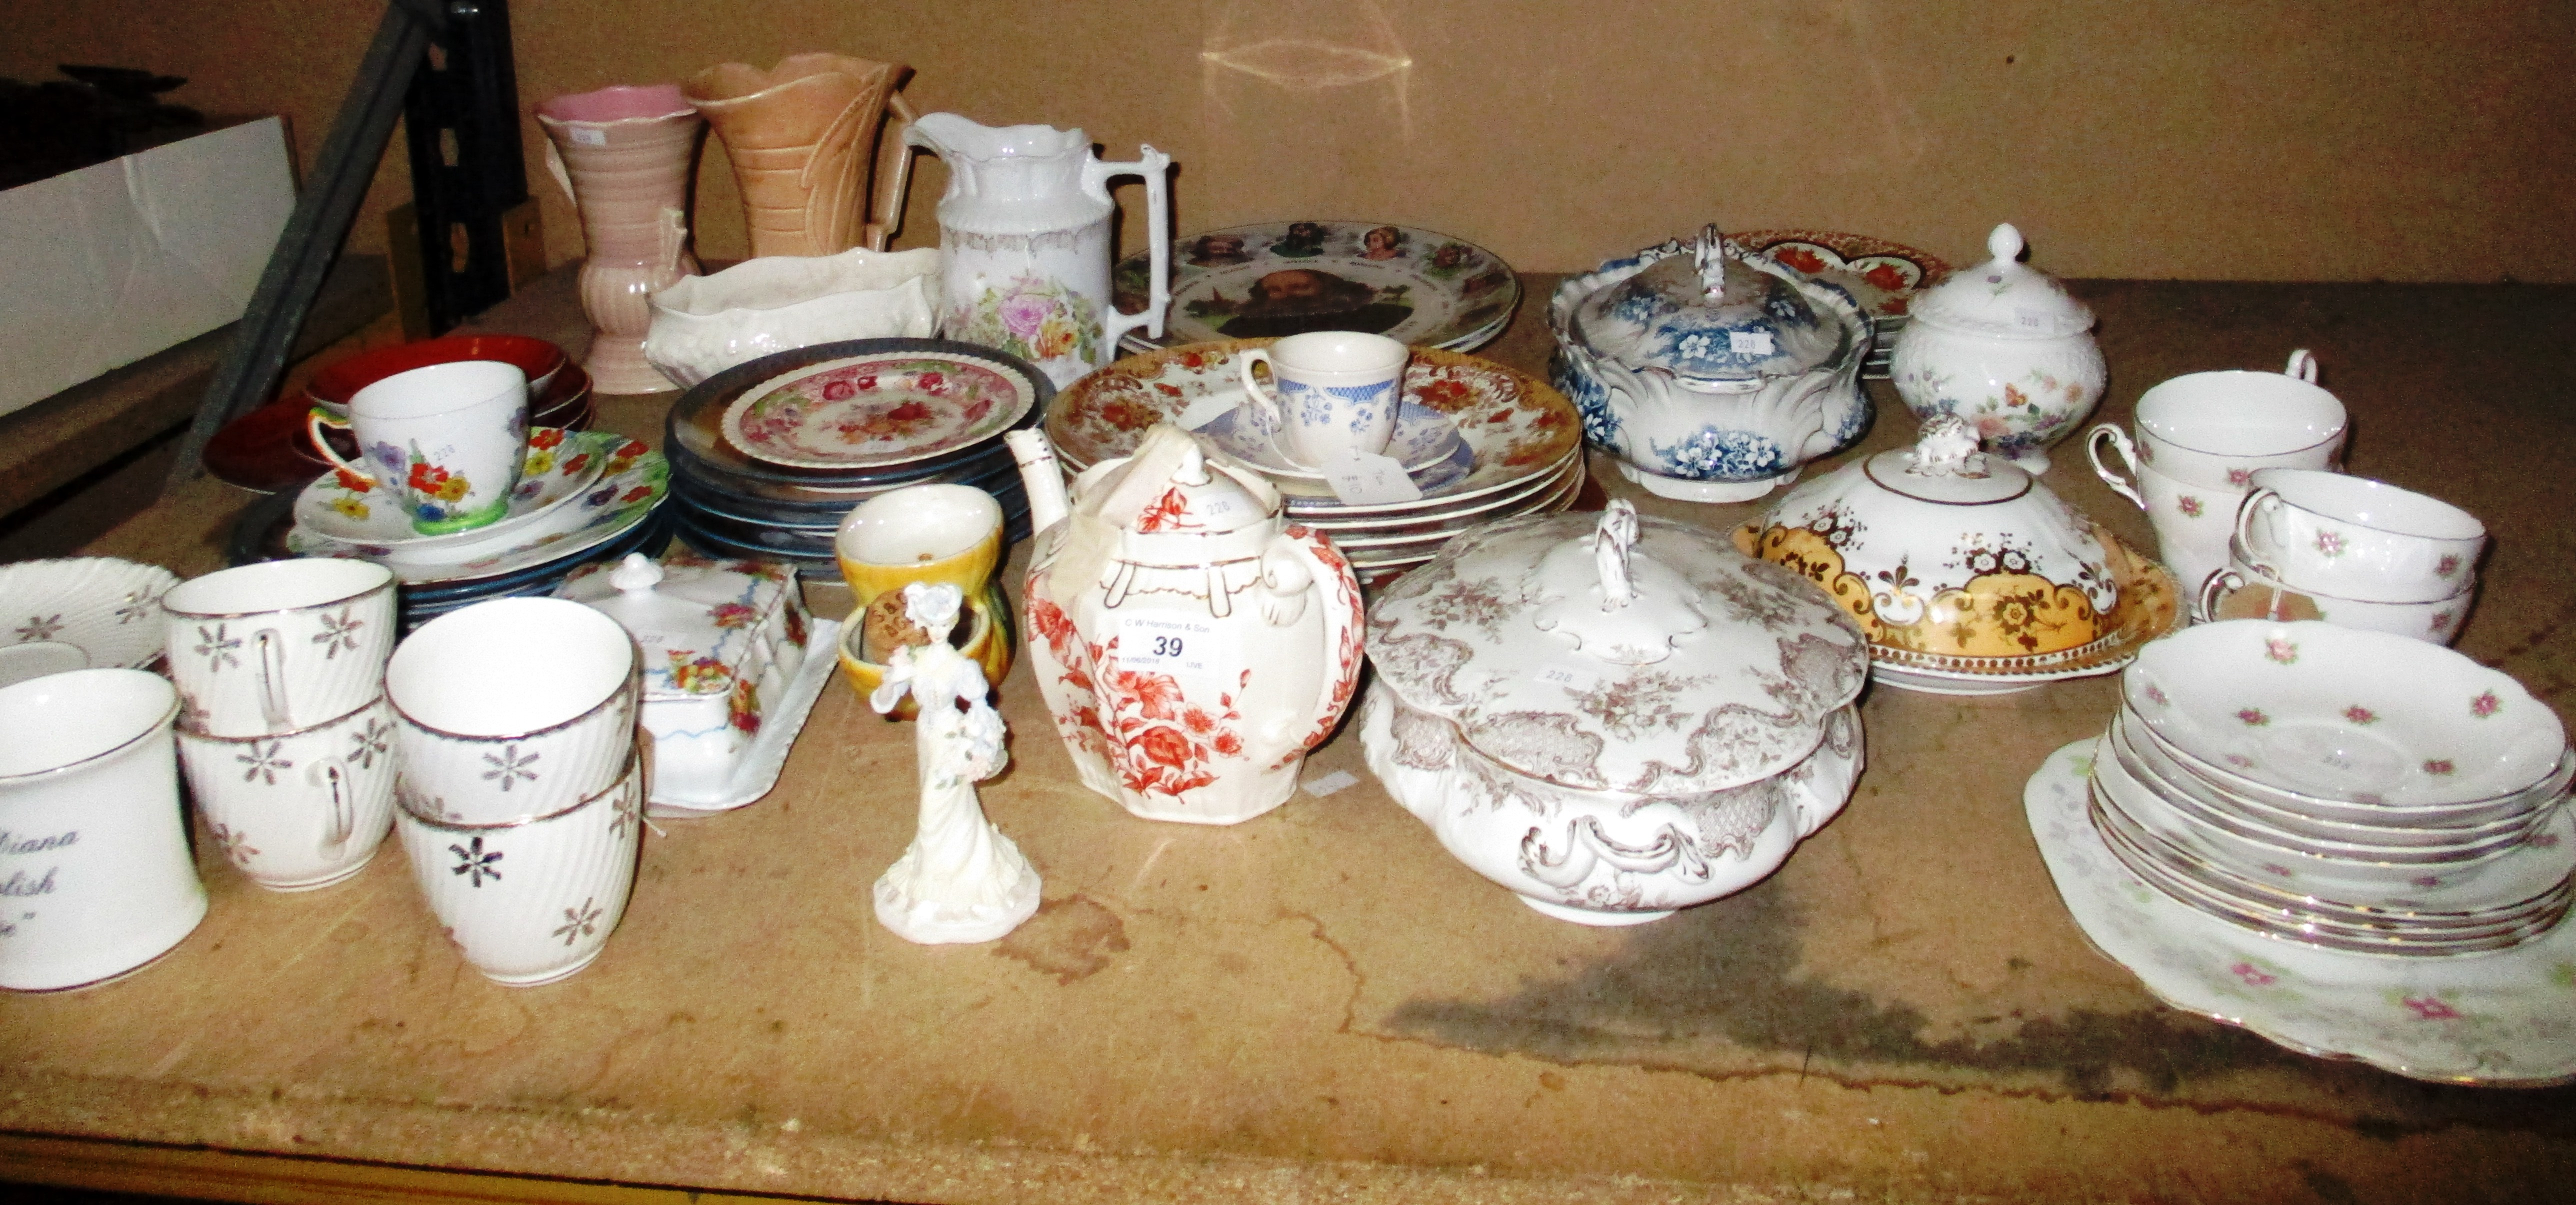 Lot 39 - A quantity of pottery and porcelain - vases, trio set, cups, saucers,